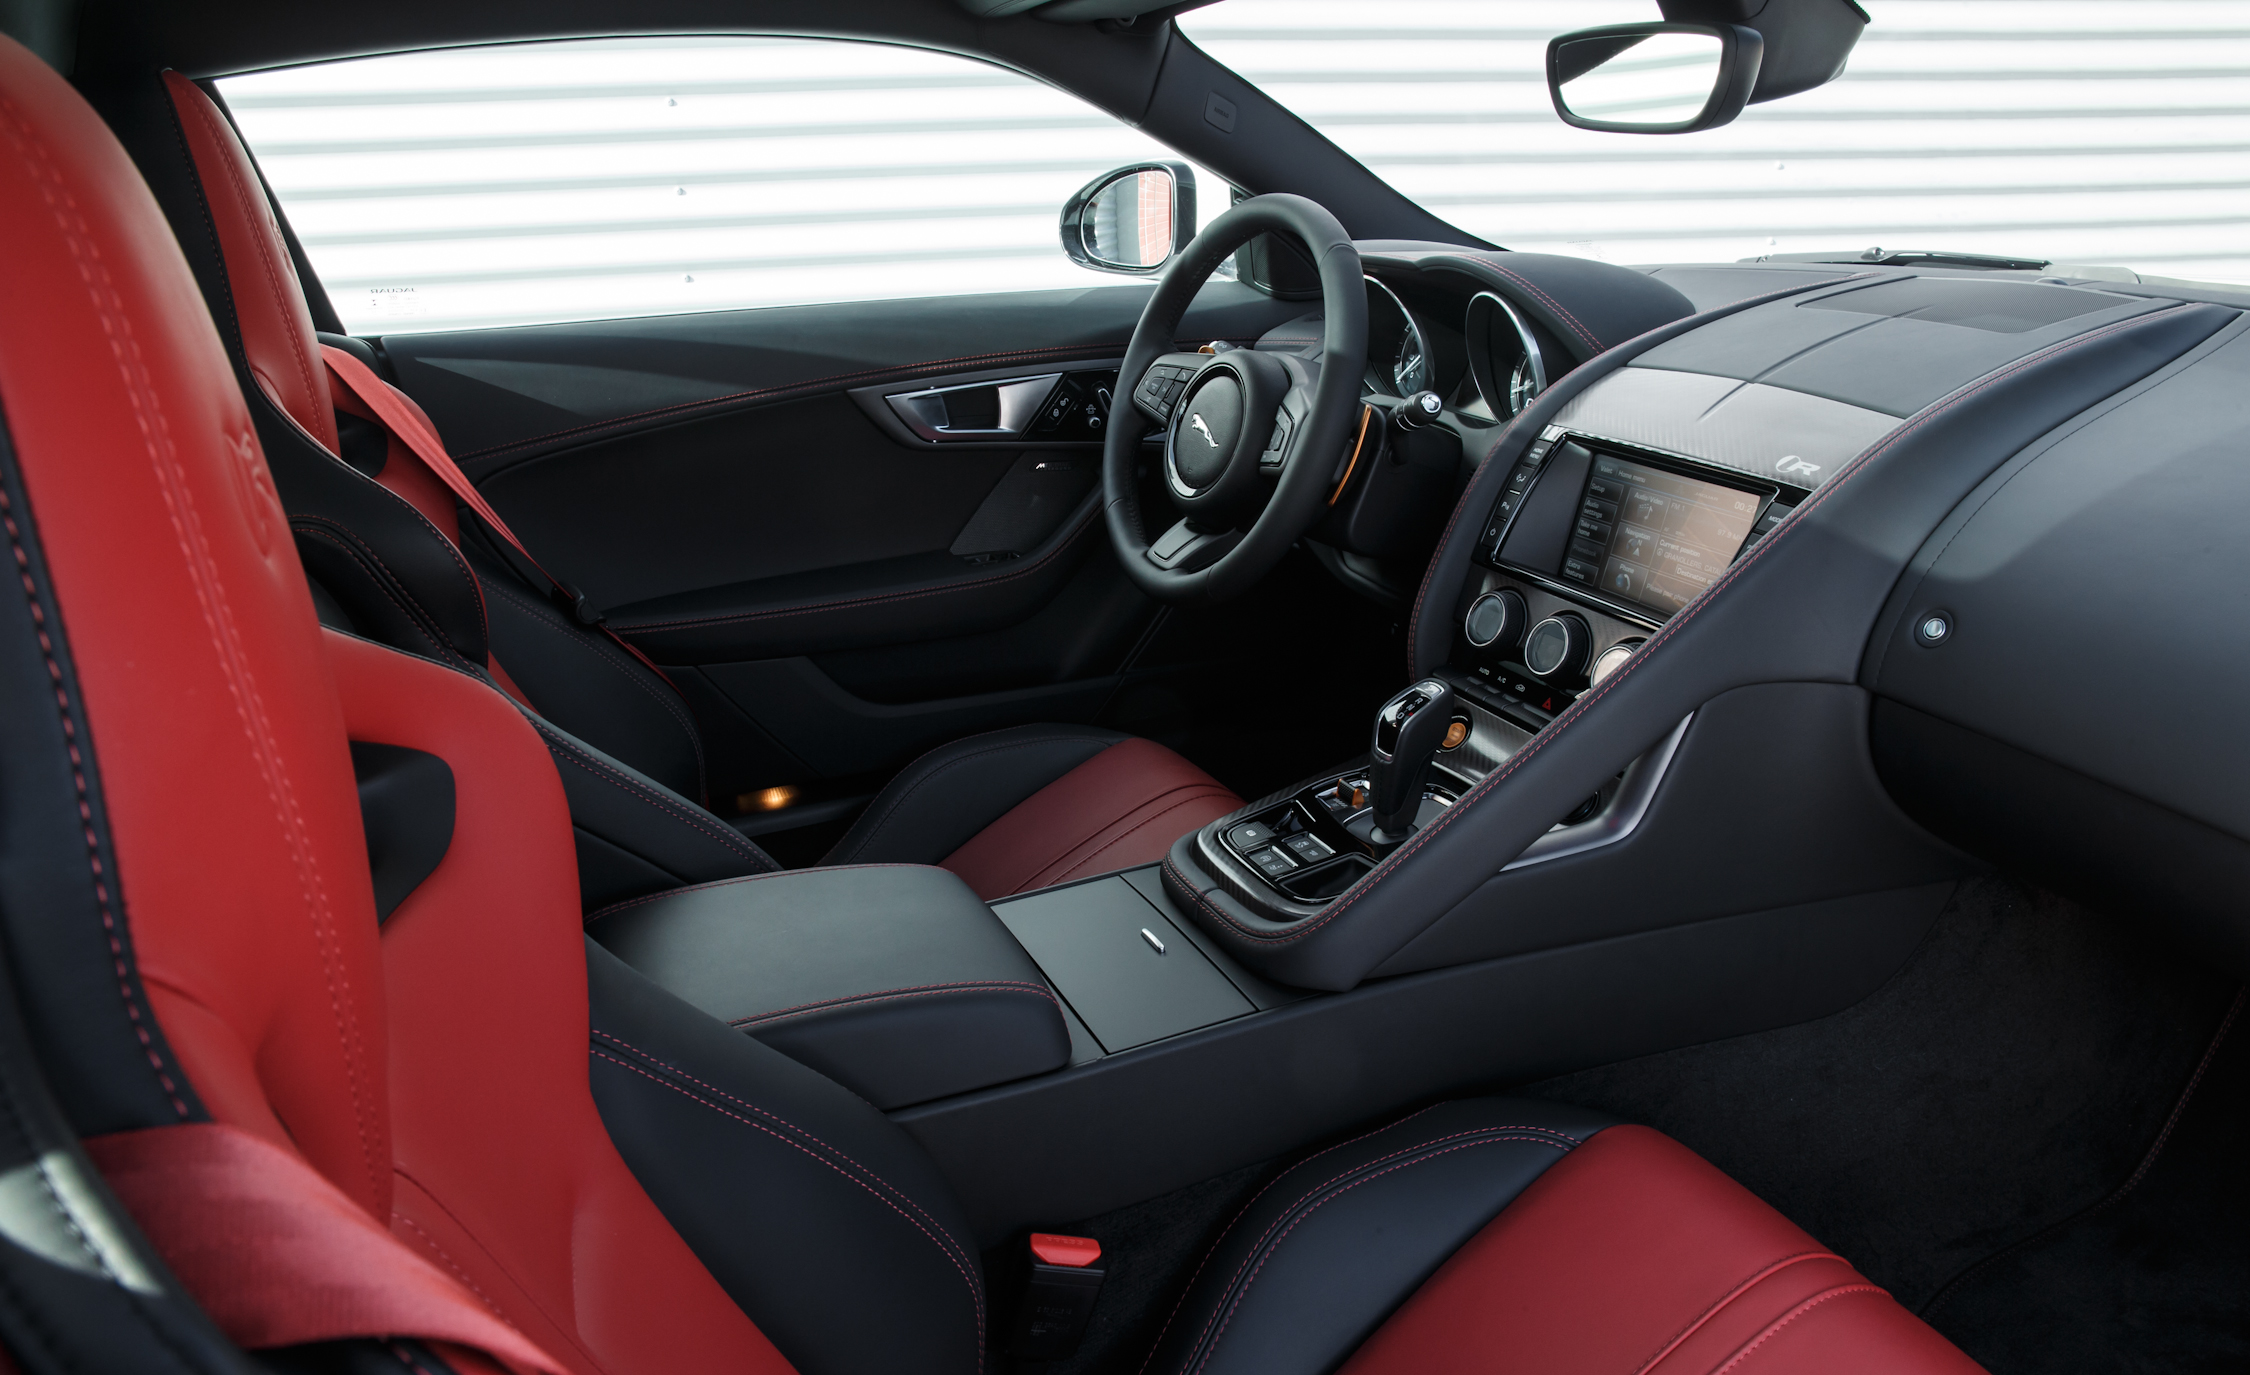 2015 Jaguar F Type R Coupe Interior (Photo 17 of 26)